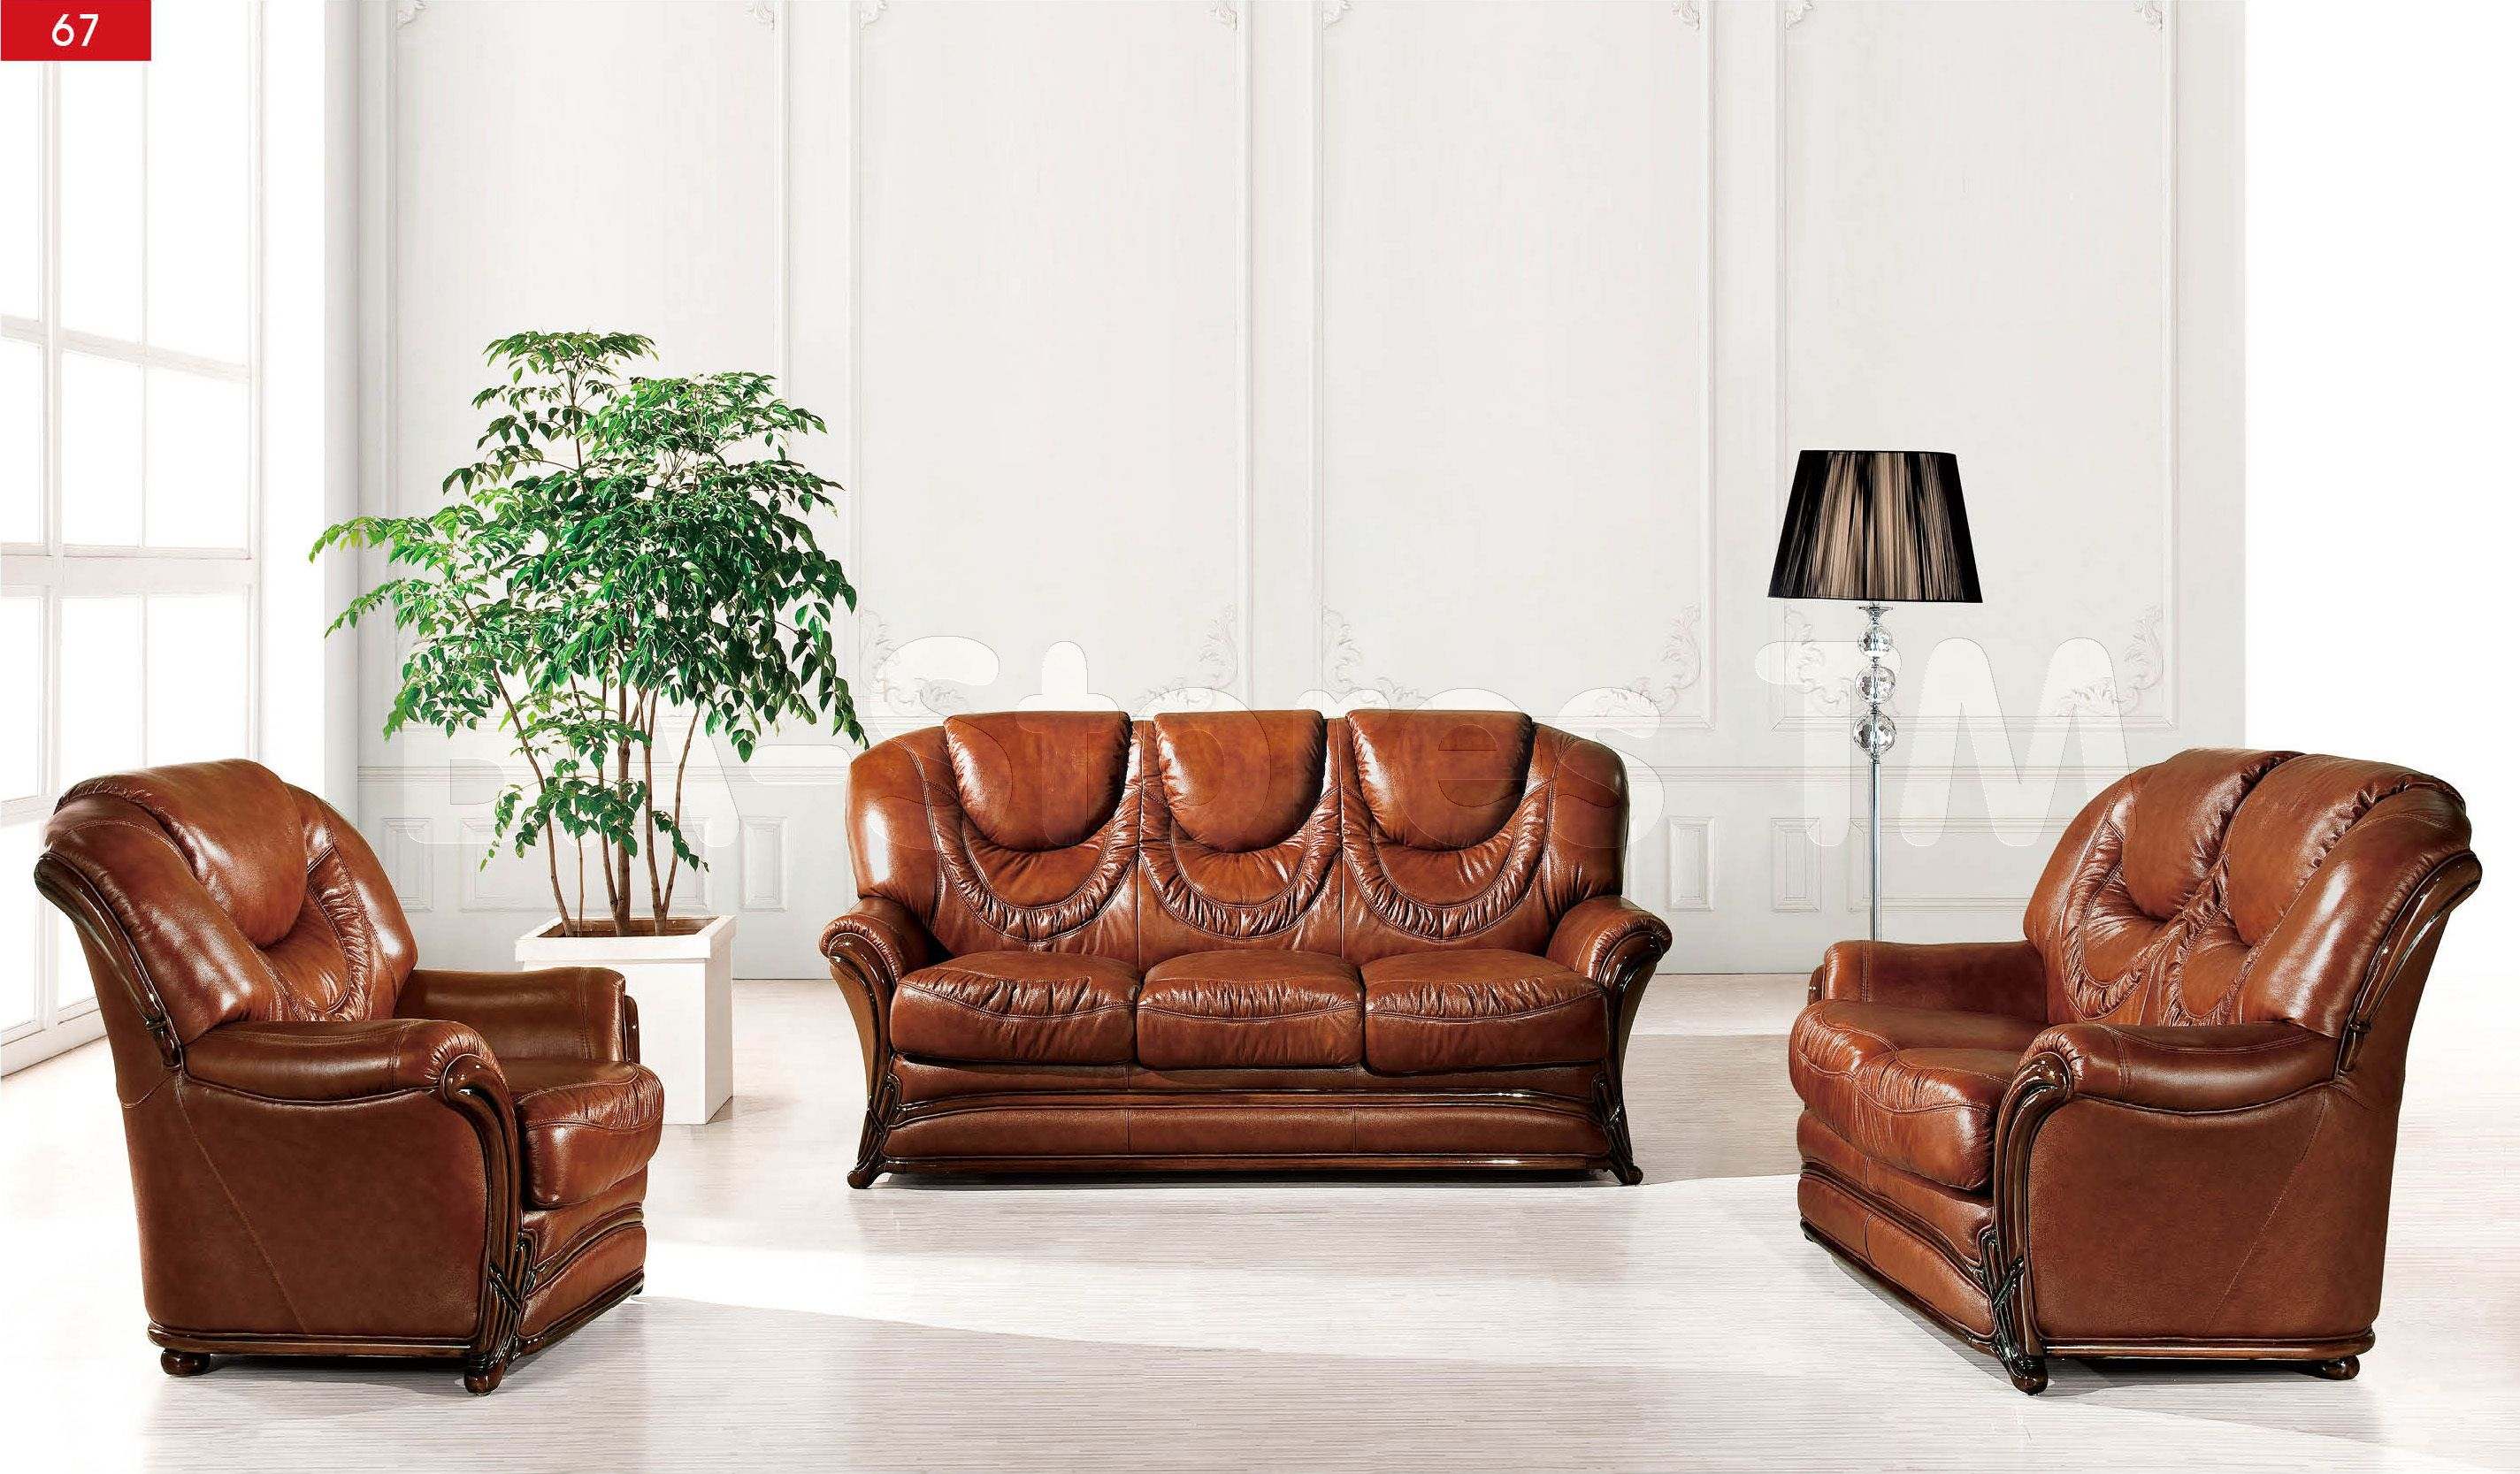 67 Classic Sofa Set by ESF   Sofa Sets by ESF Furniture   Pinterest ...